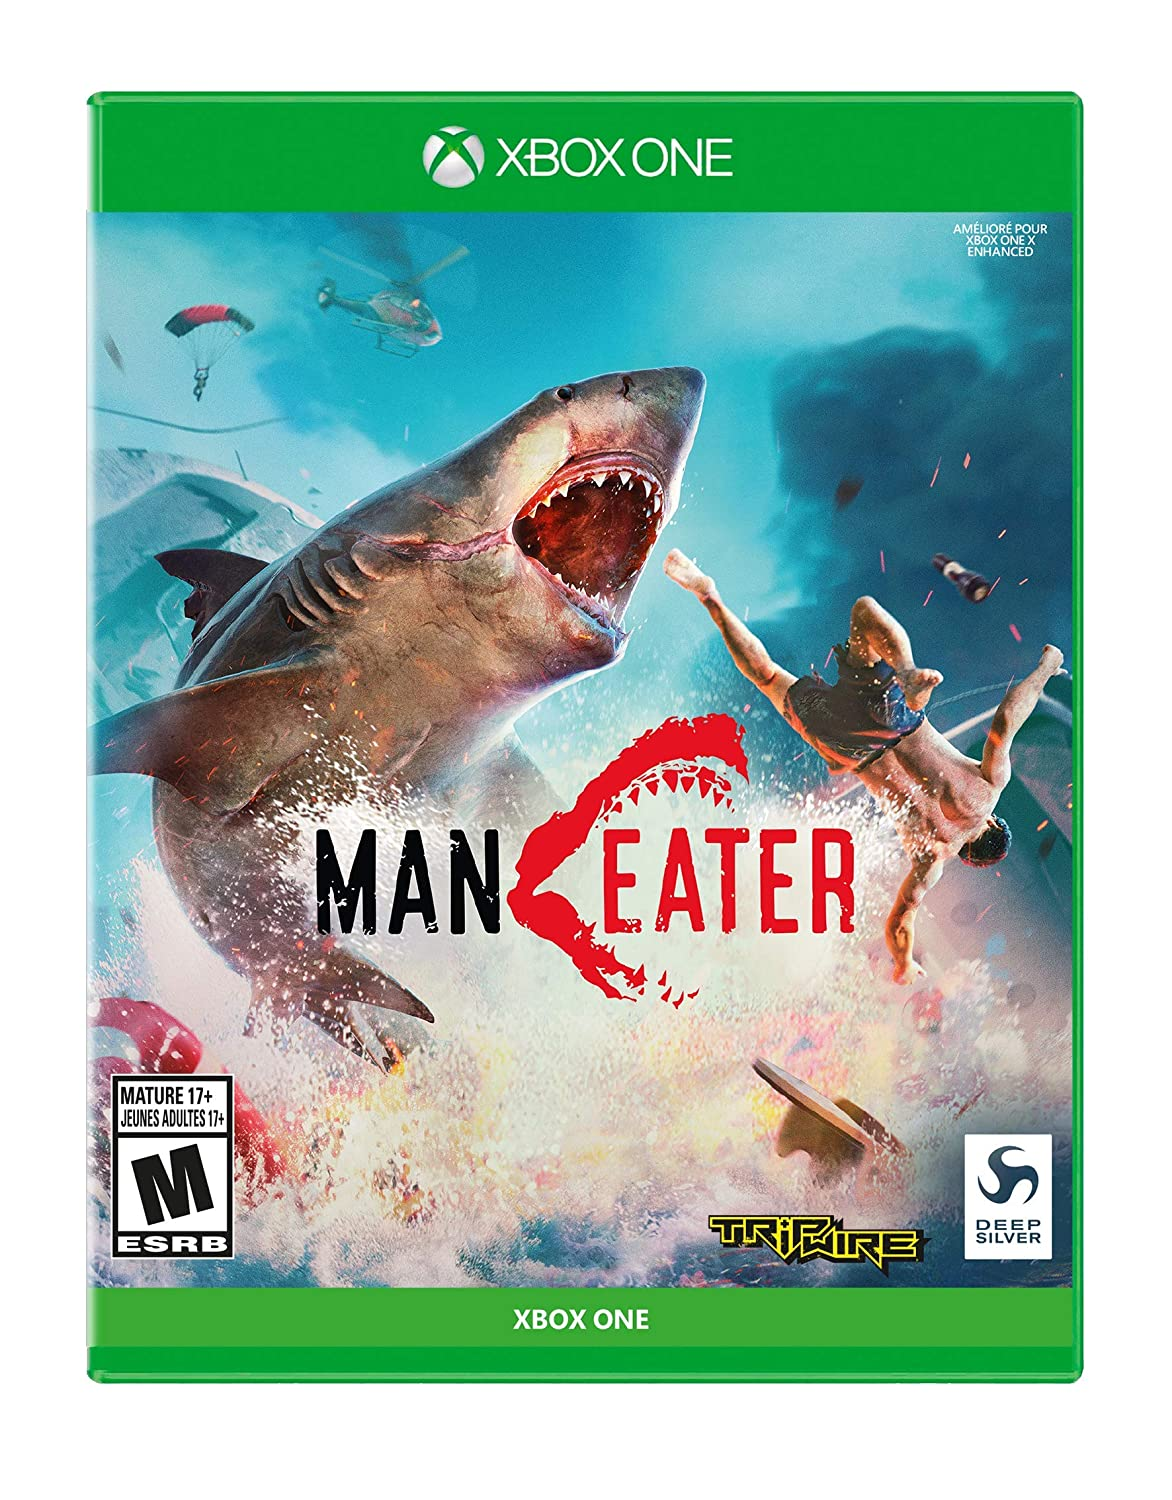 Man Eater, Deep Silver, Xbox One, 816819017517